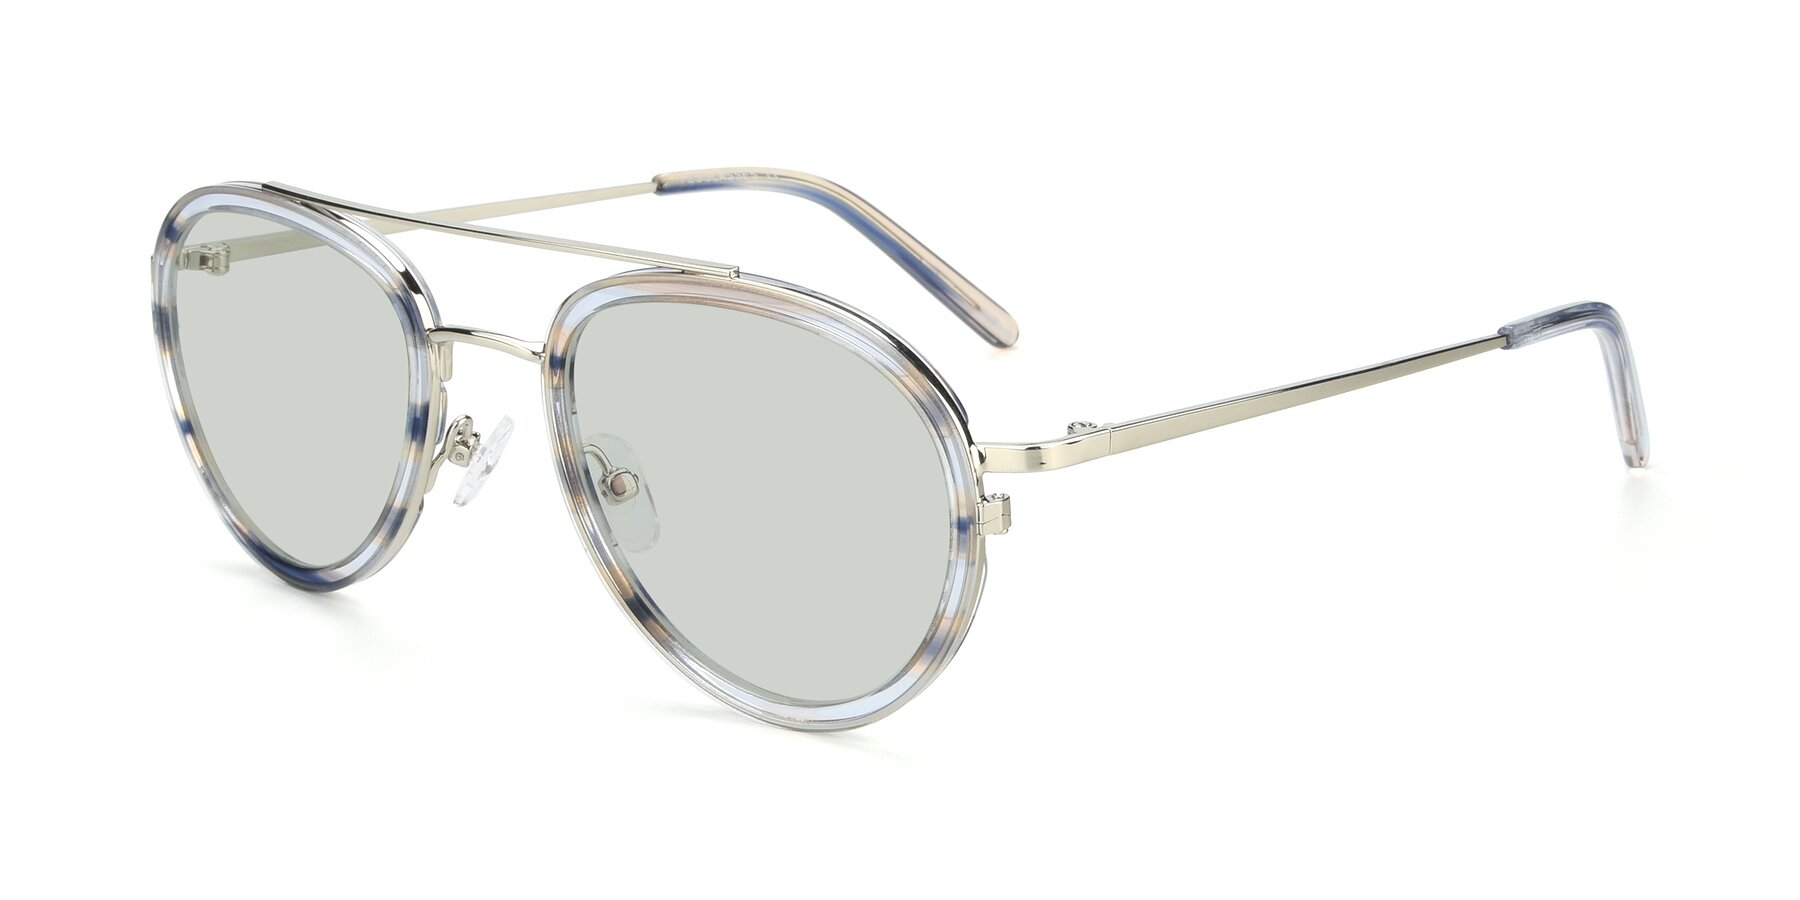 Angle of 9554 in Silver-Transparent with Light Green Tinted Lenses